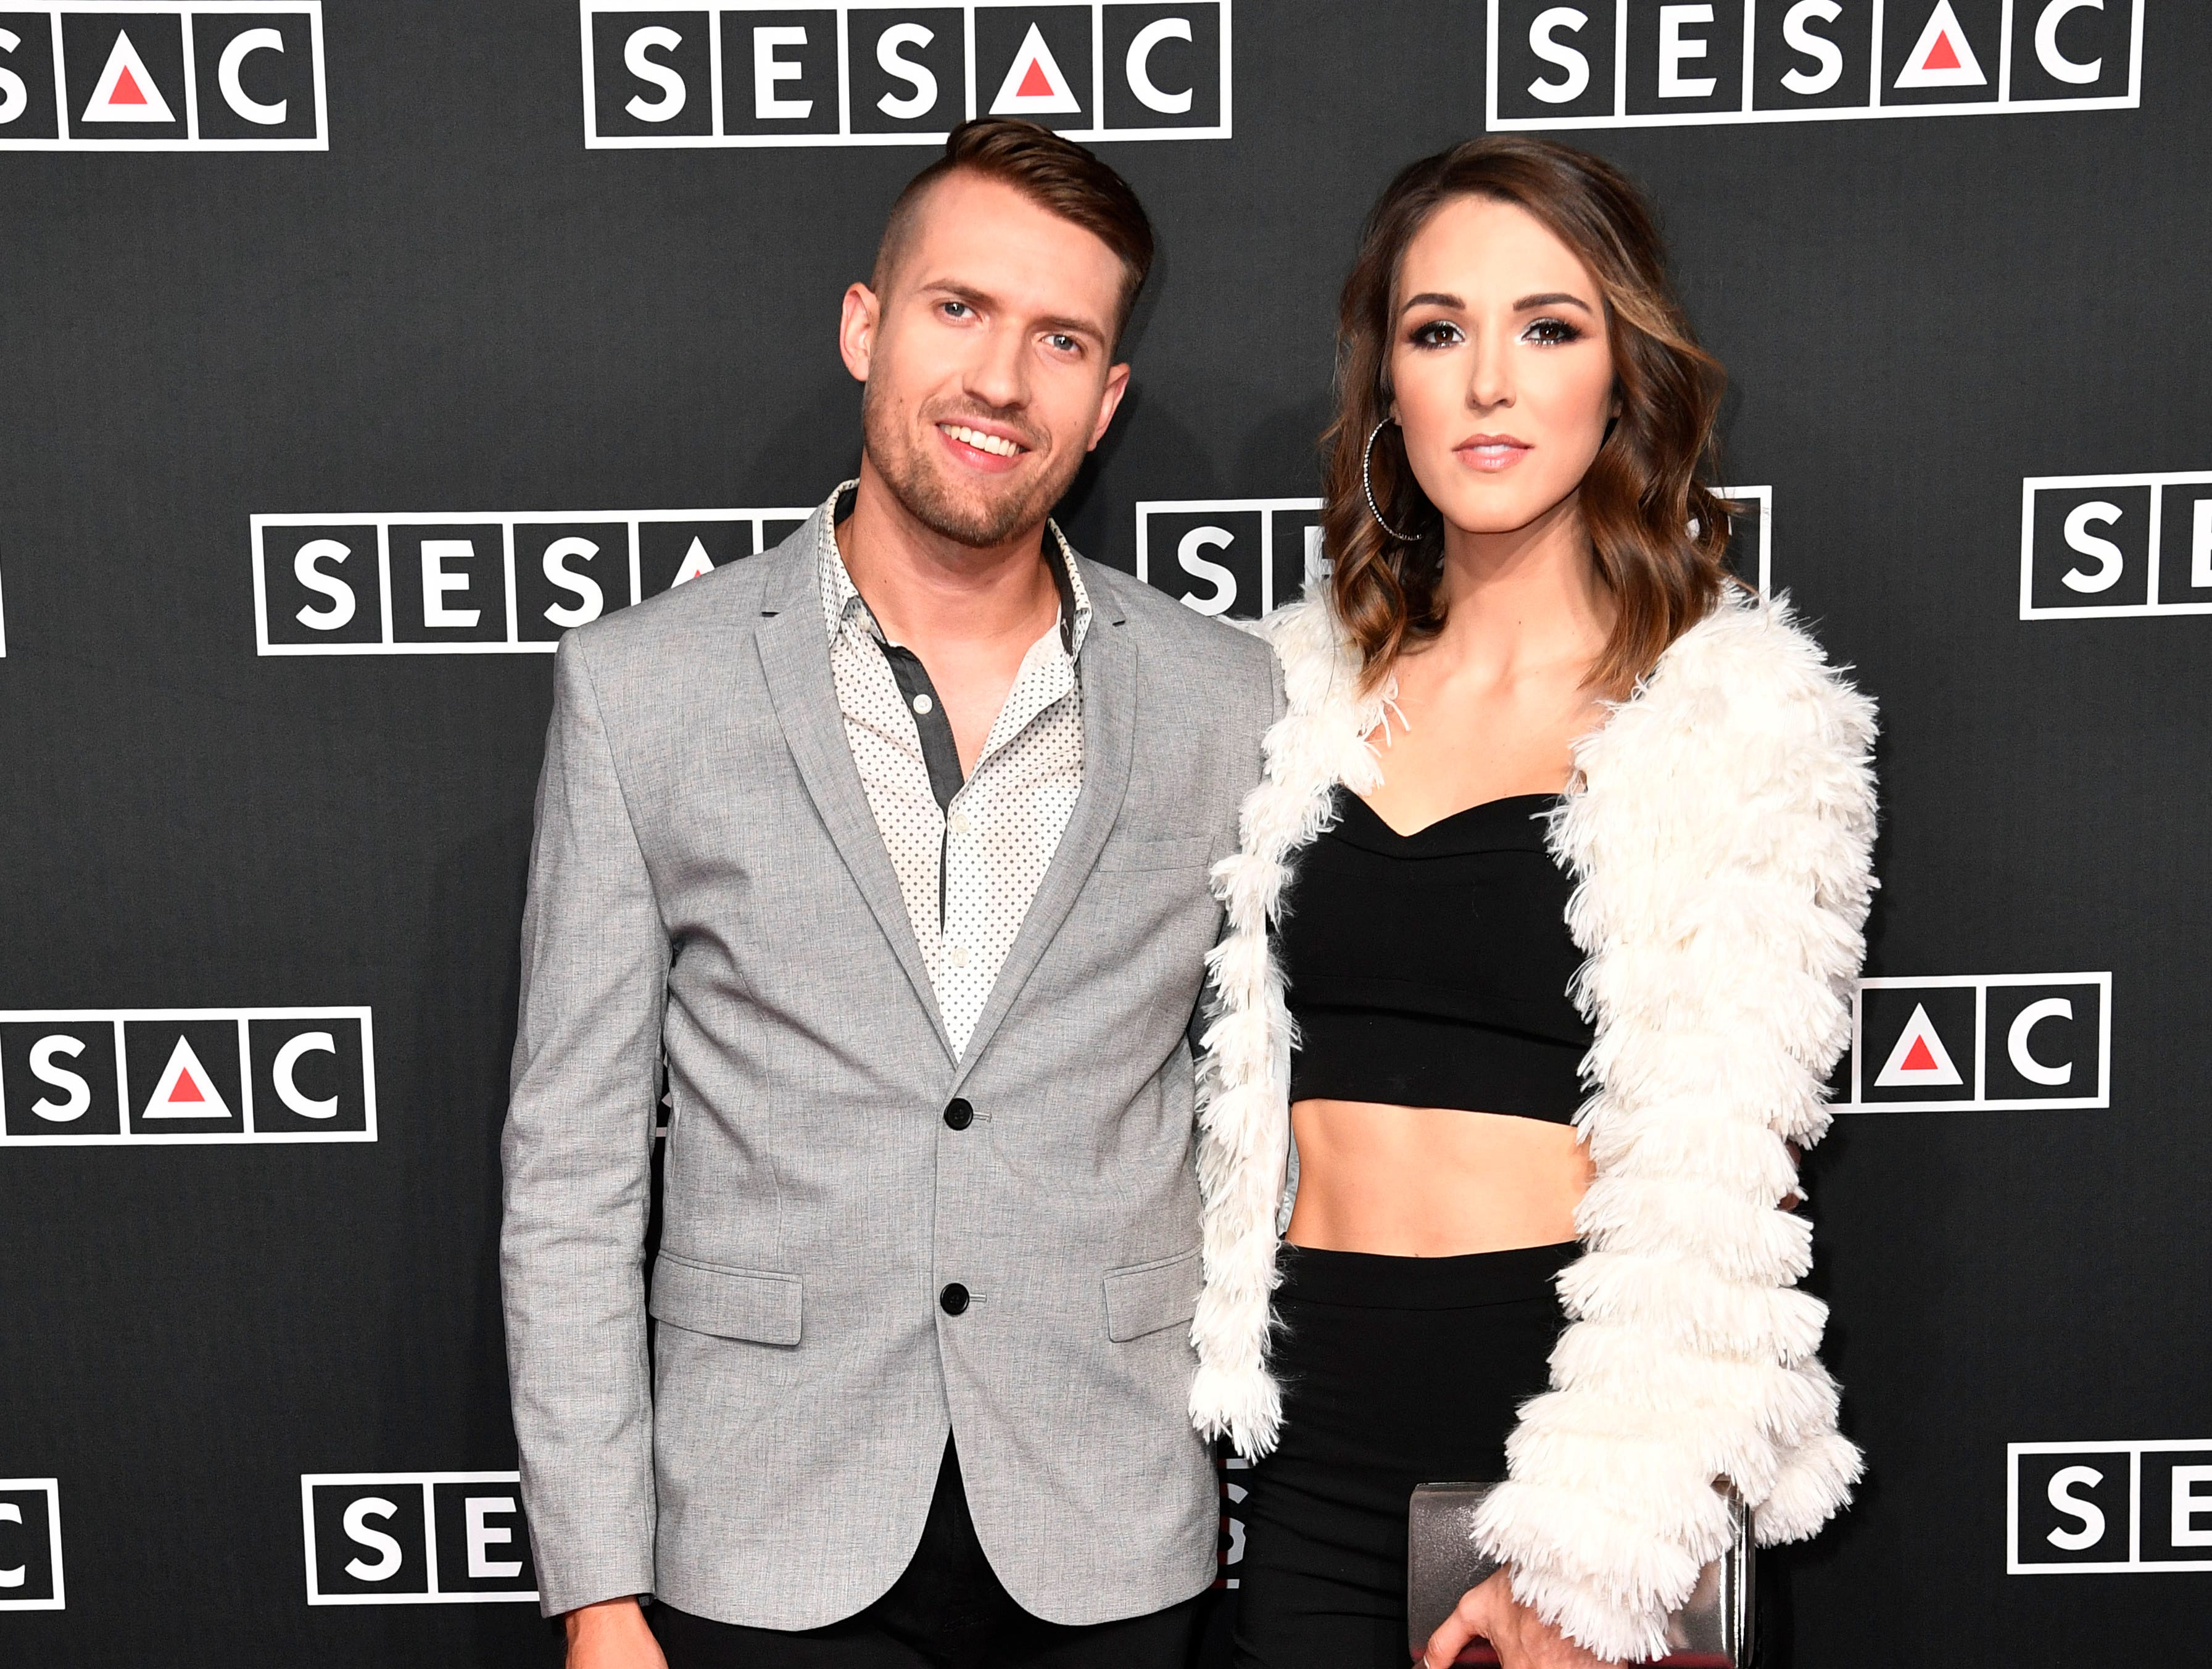 Trey Smith and Jennifer Fielder on the red carpet at the SESAC Nashville Music Awards at the Country Music Hall of Fame and Museum Sunday Nov. 11, 2018, in Nashville, Tenn.